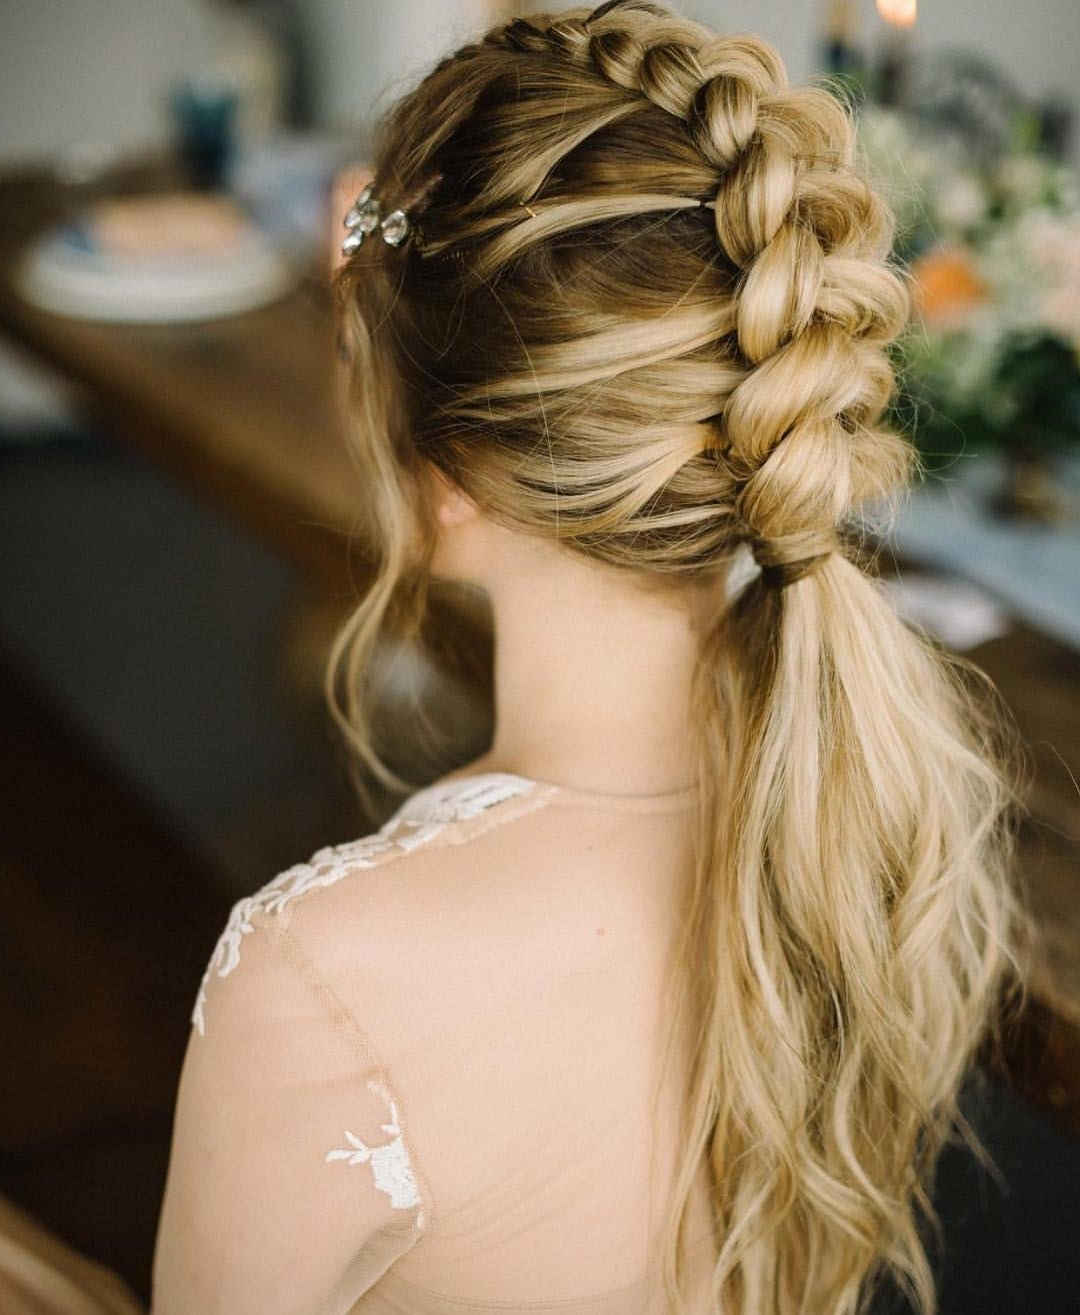 Most Recent Blonde Braided Hairstyles Regarding 10 Braided Hairstyles For Long Hair – Weddings, Festivals & Holiday (View 5 of 15)